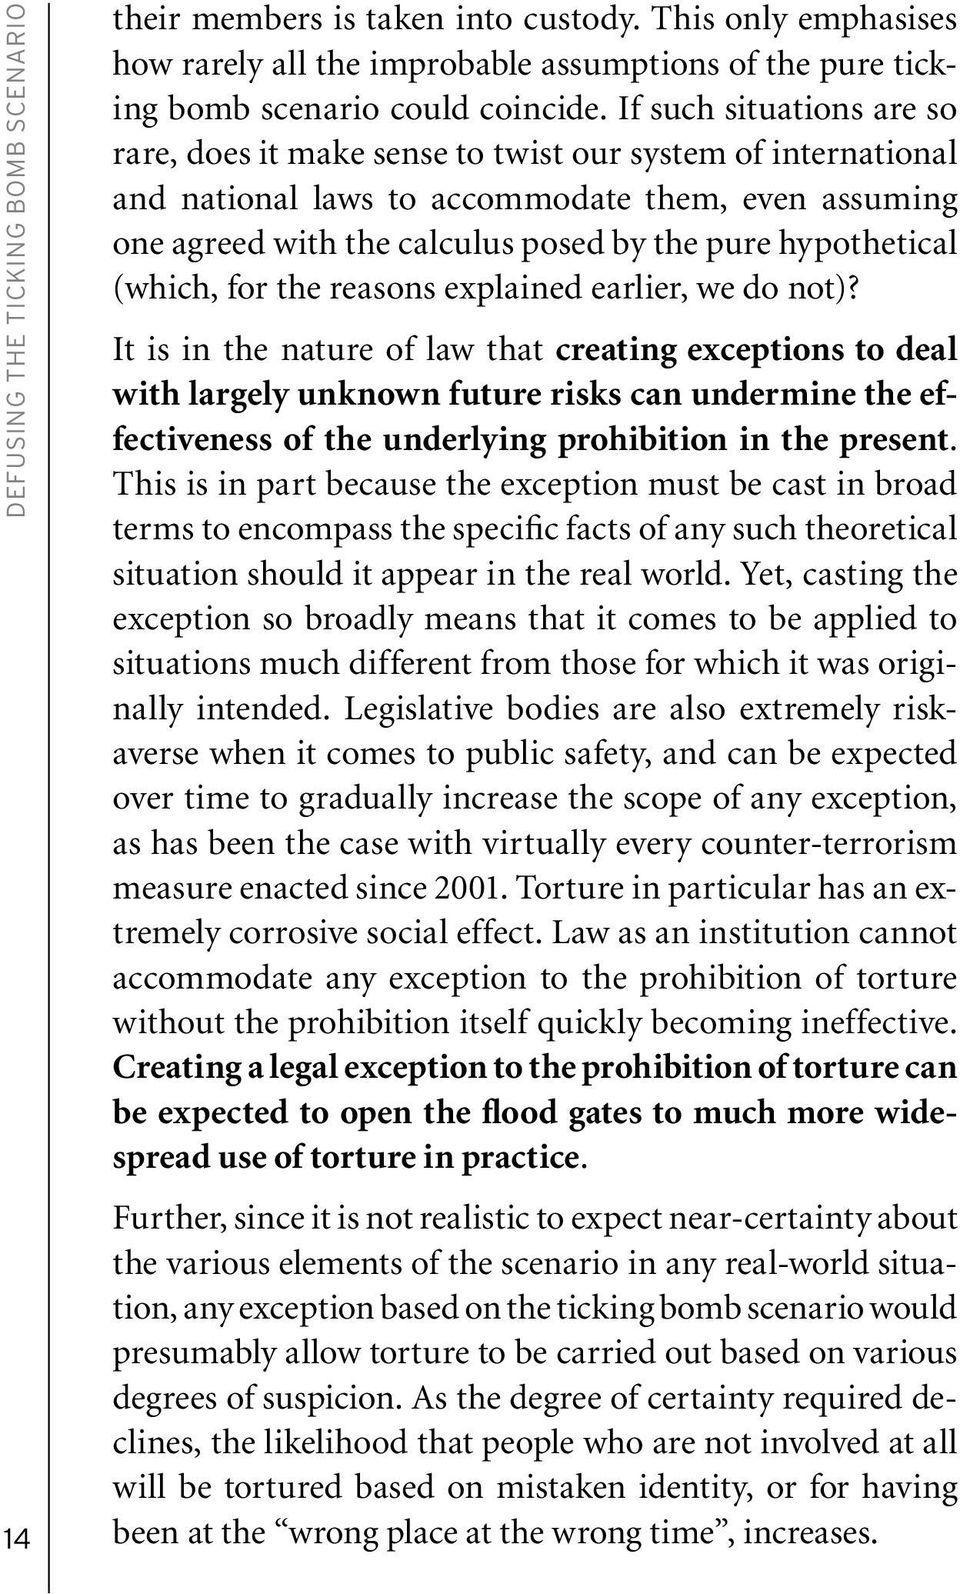 hypothetical (which, for the reasons explained earlier, we do not)?